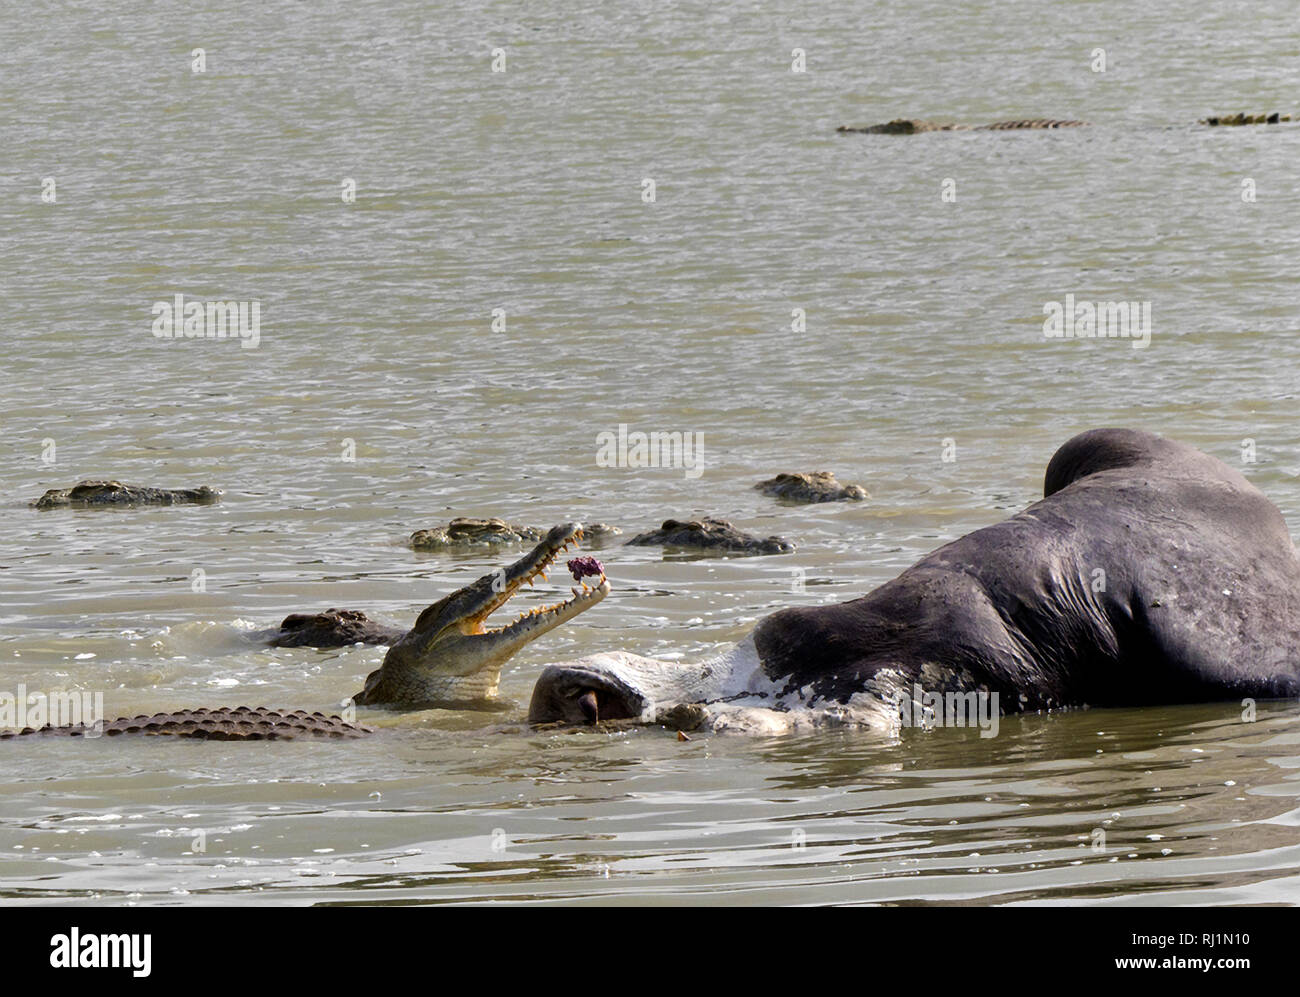 A group of large crocodiles join in a feeding franzy feeding off the carcasse of a large bull hippo that died in a territorial fight in one of the Ruf Stock Photo